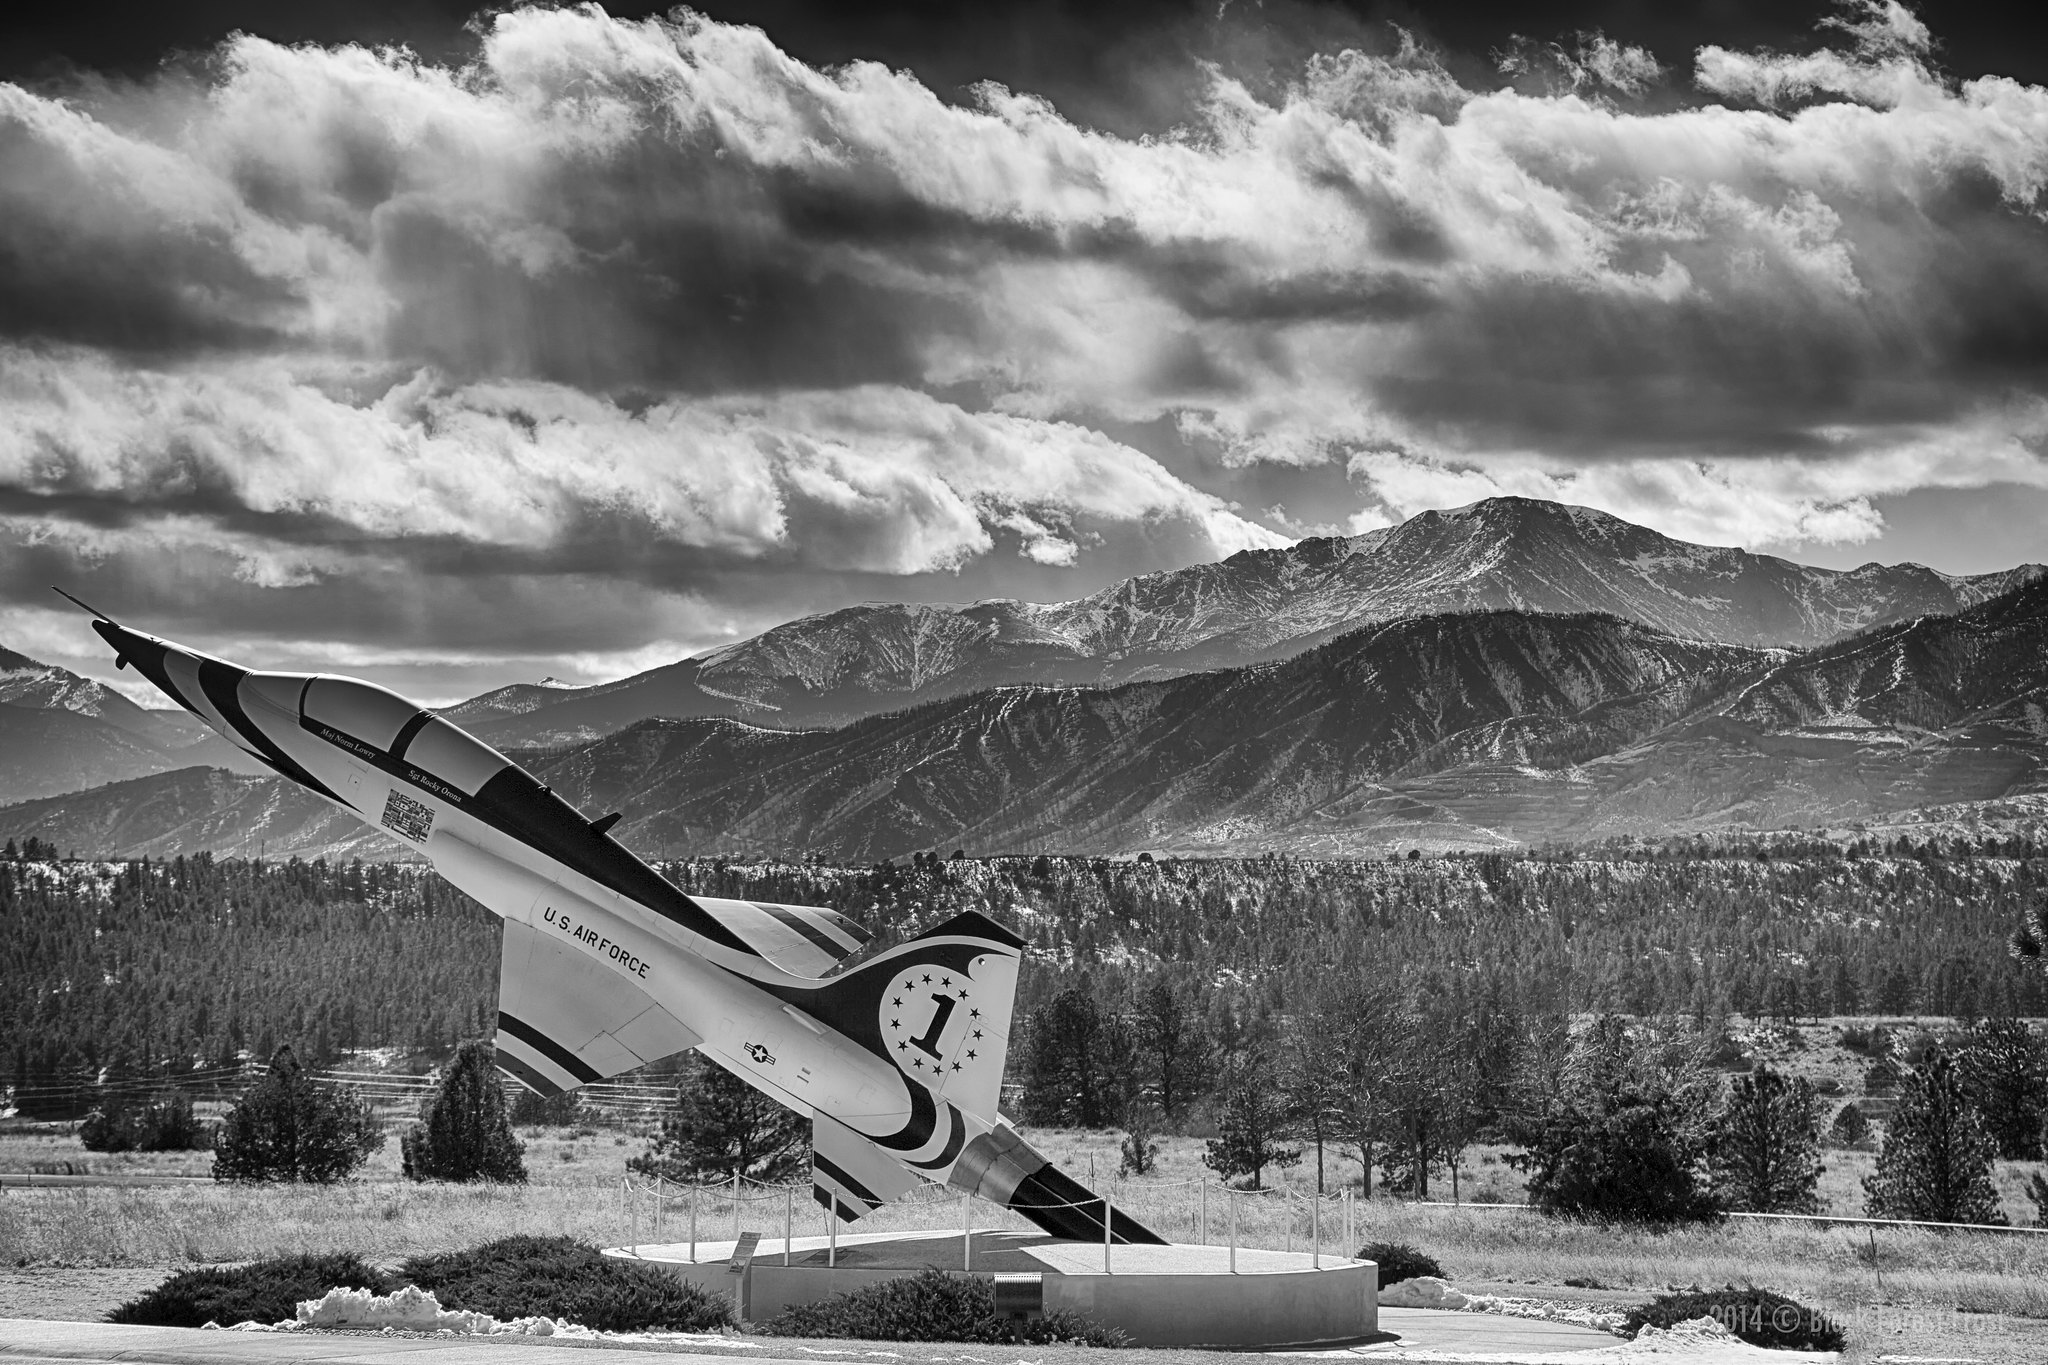 Black and white image of a military aircraft mounted on a static display pointing toward the sky, with Pike's Peak in the background